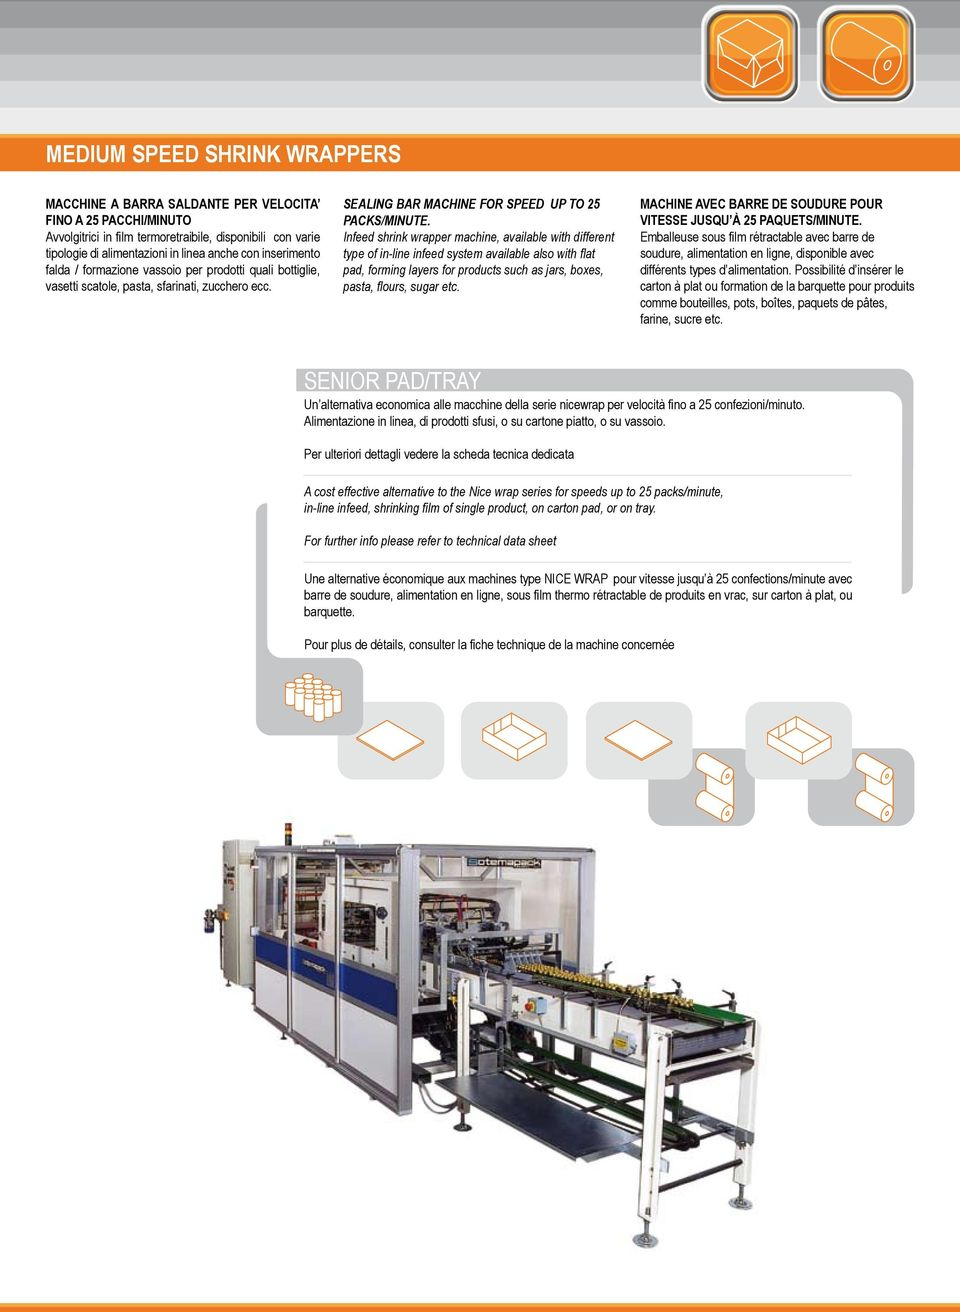 Infeed shrink wrapper machine, available with different type of in-line infeed system available also with flat pad, forming layers for products such as jars, boxes, pasta, flours, sugar etc.